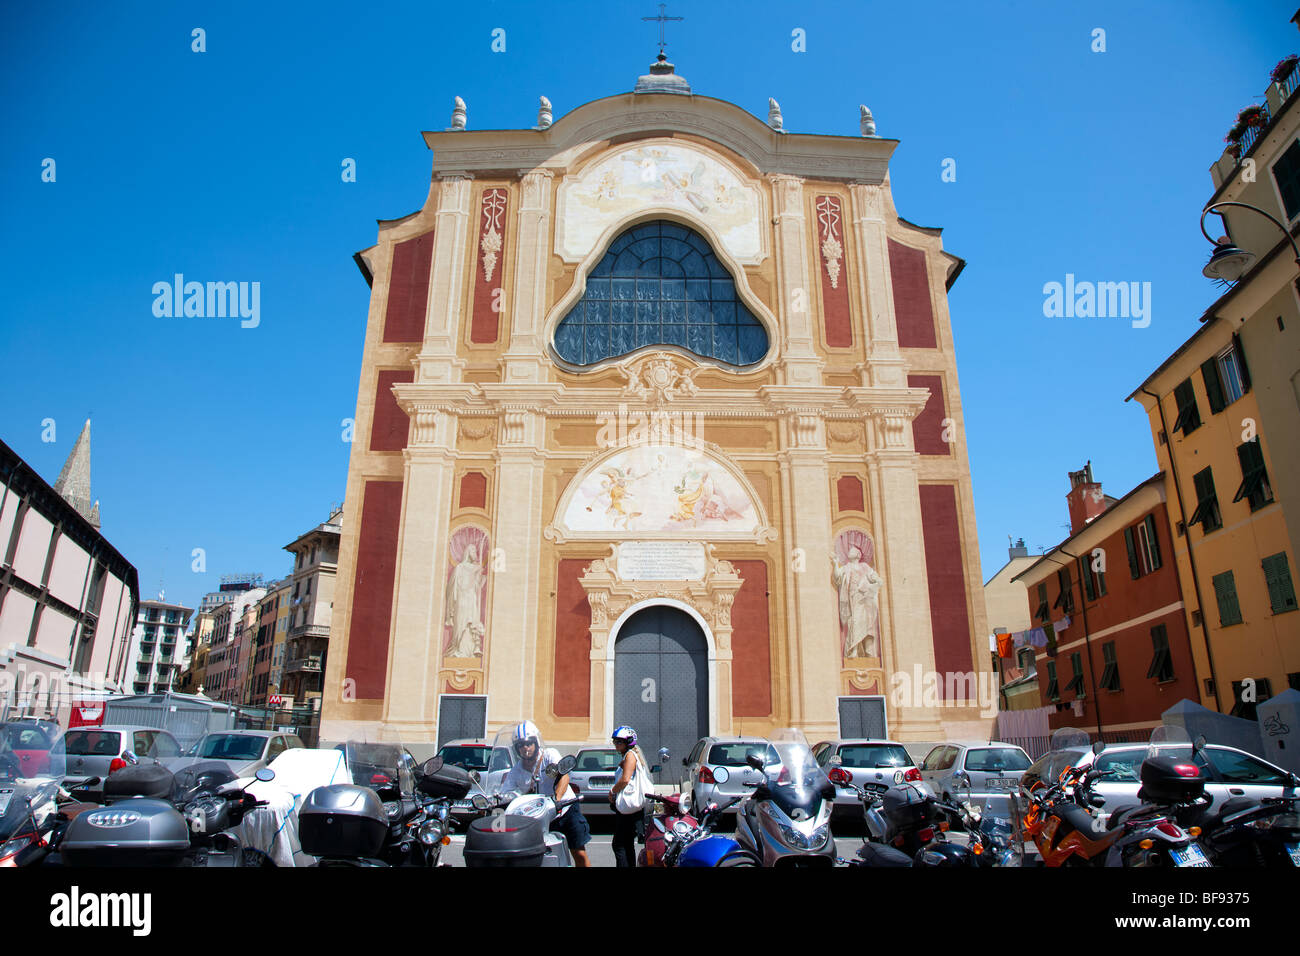 Church with richly painted facade, Genoa, Italy - Stock Image